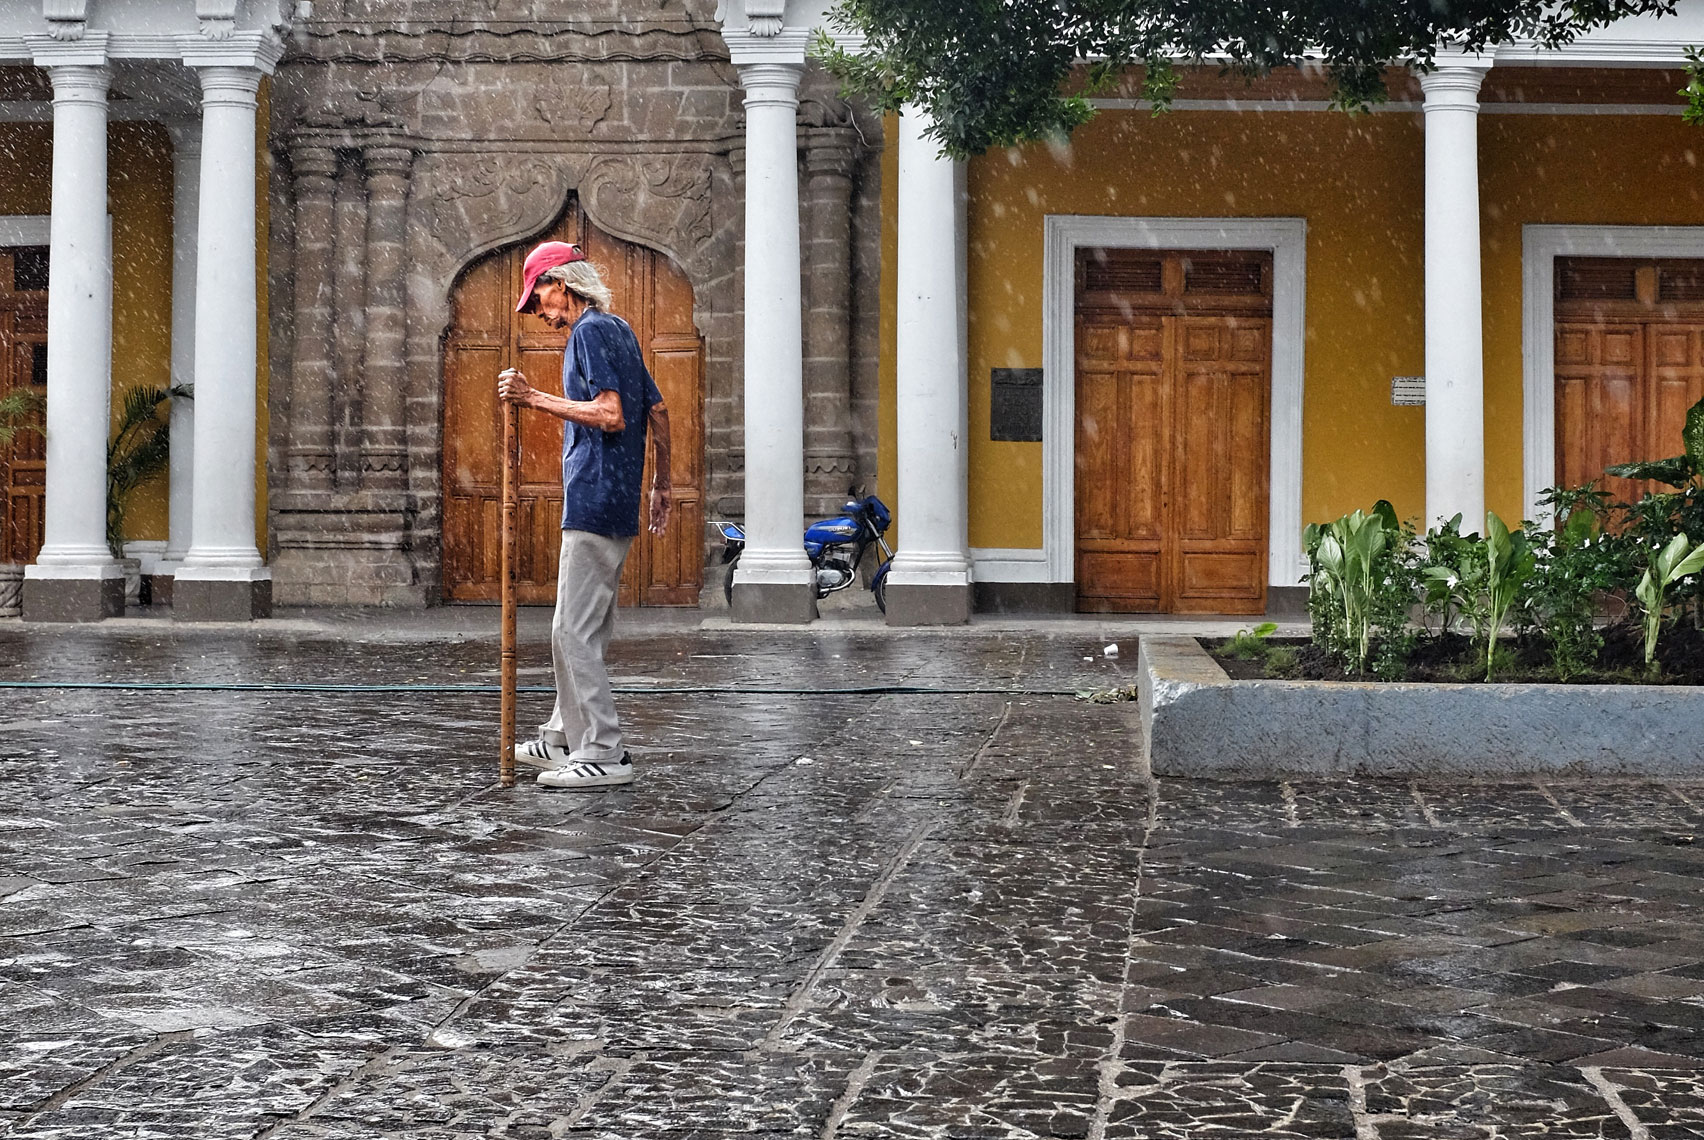 Granada, Nicaragua - street photography by Shane Nagle